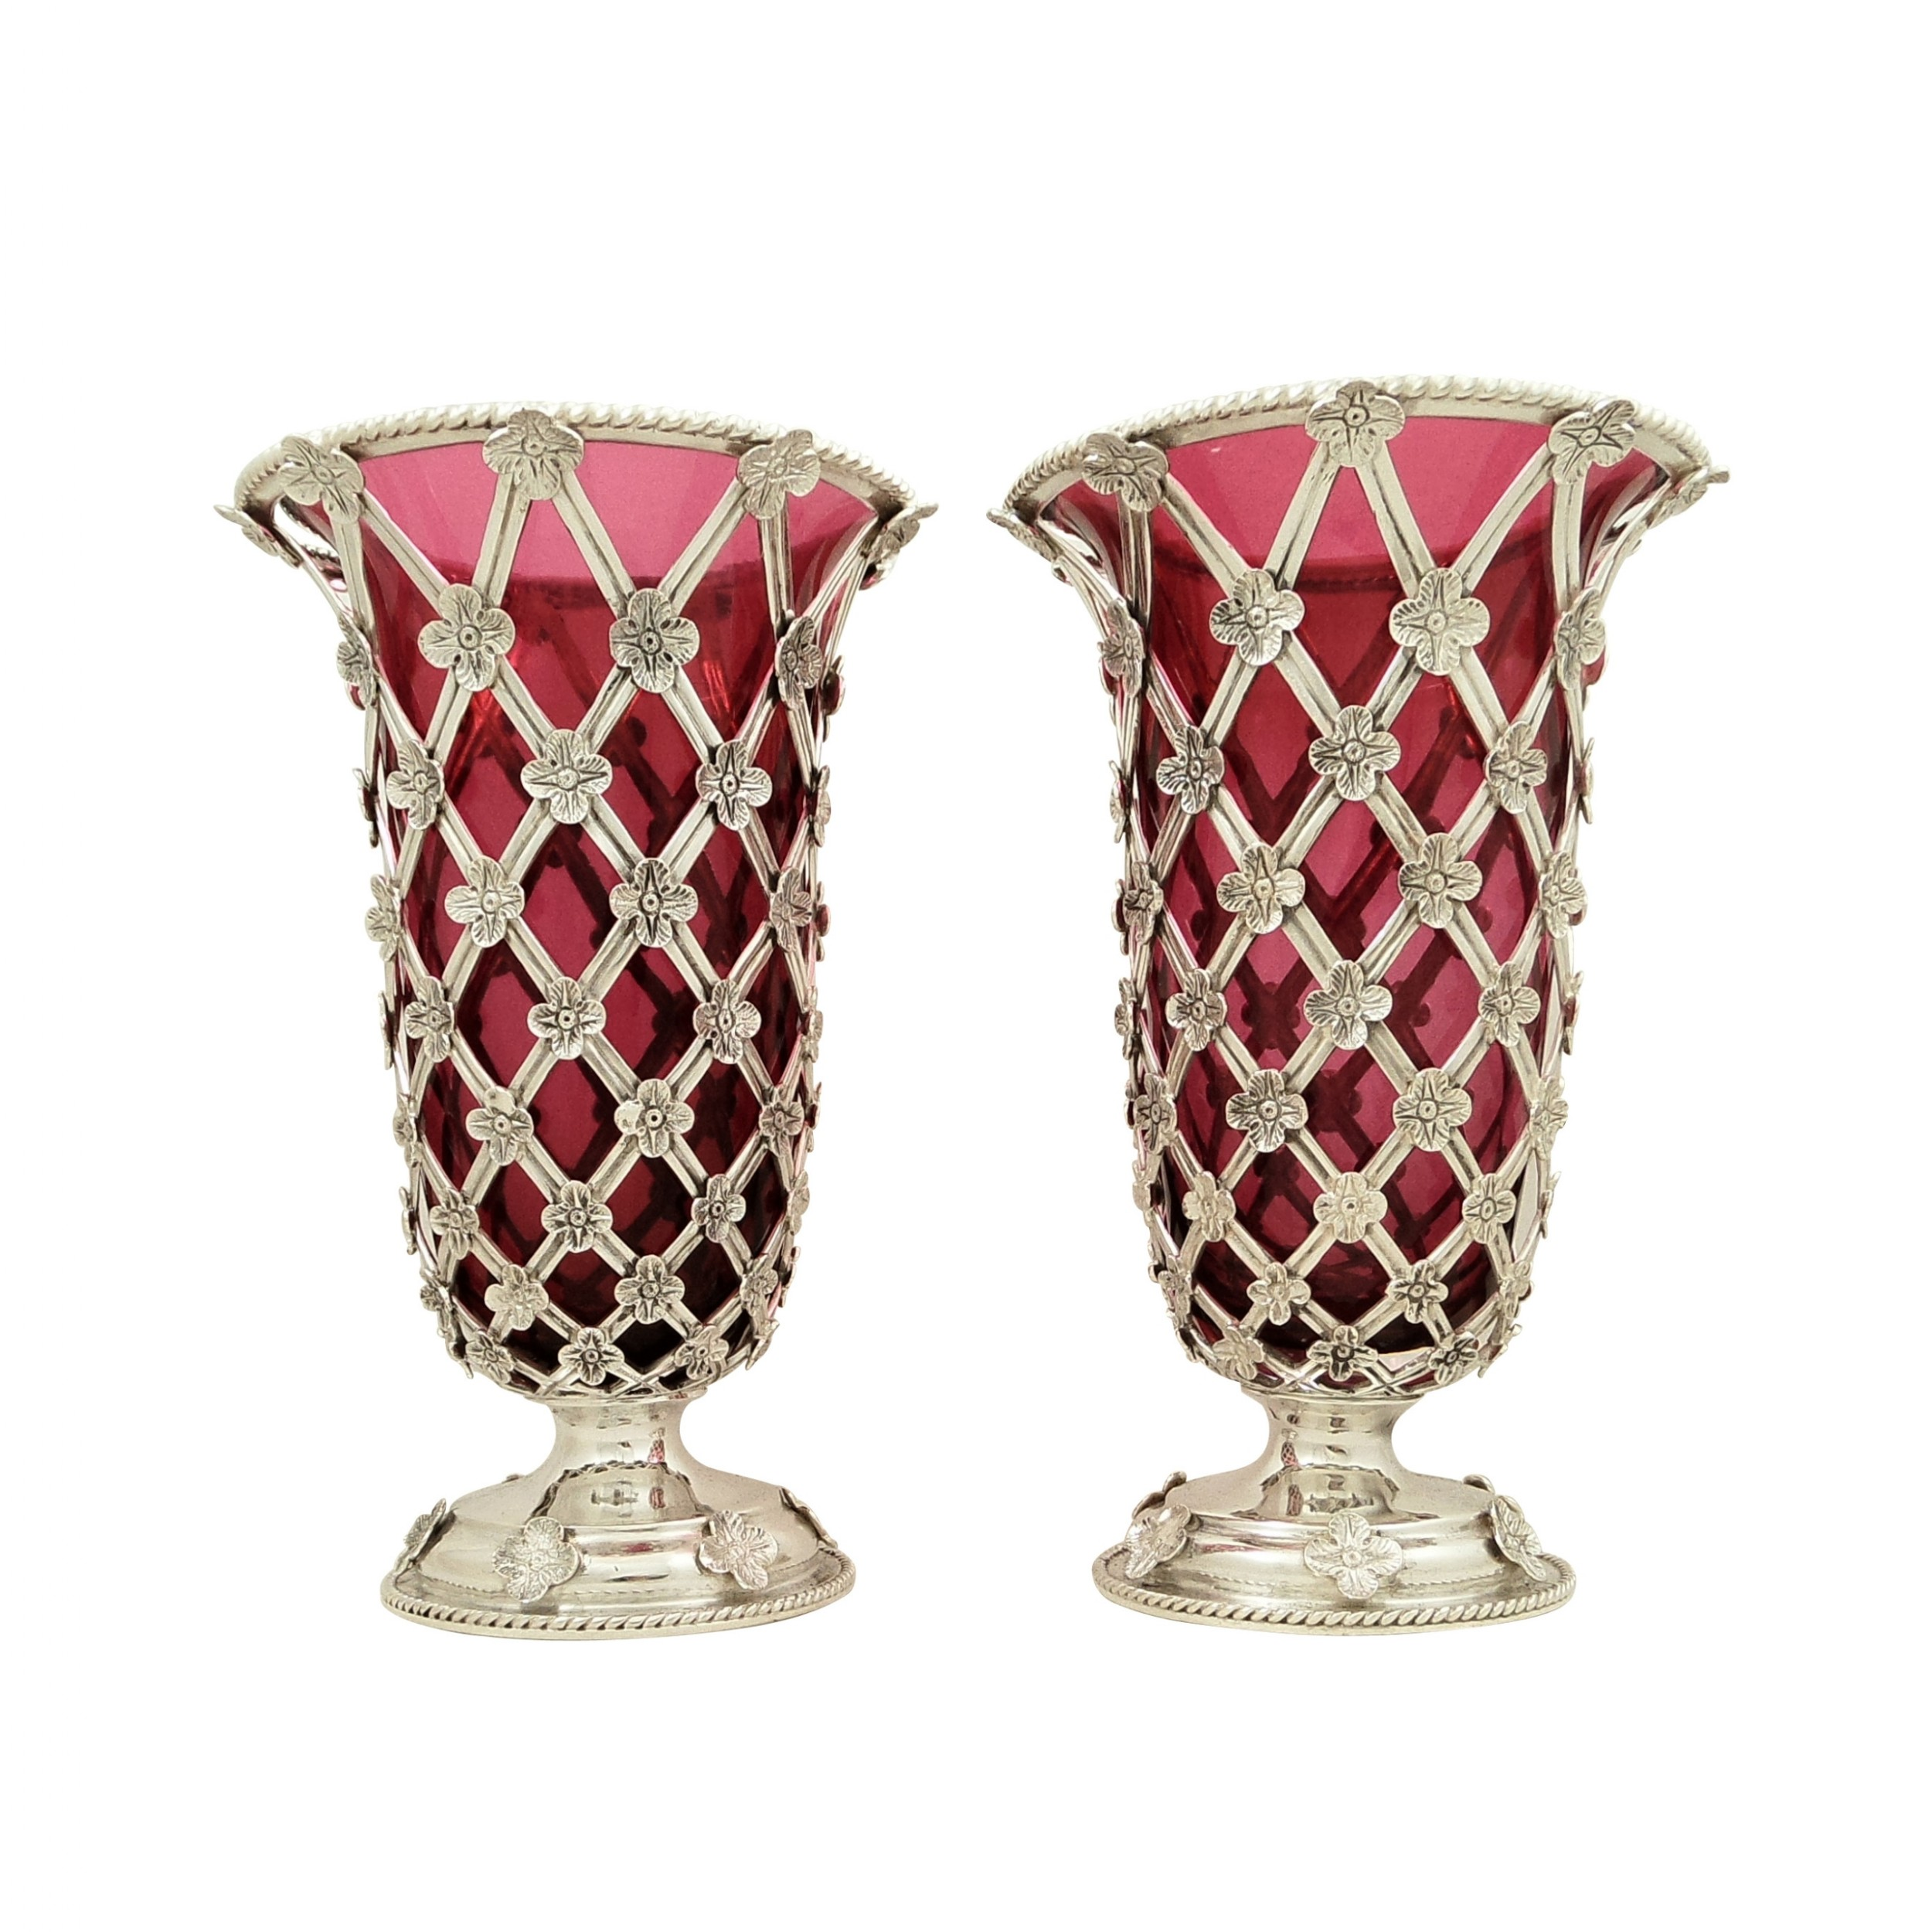 pair of antique sterling silver vases with cranberry glass liners 1910